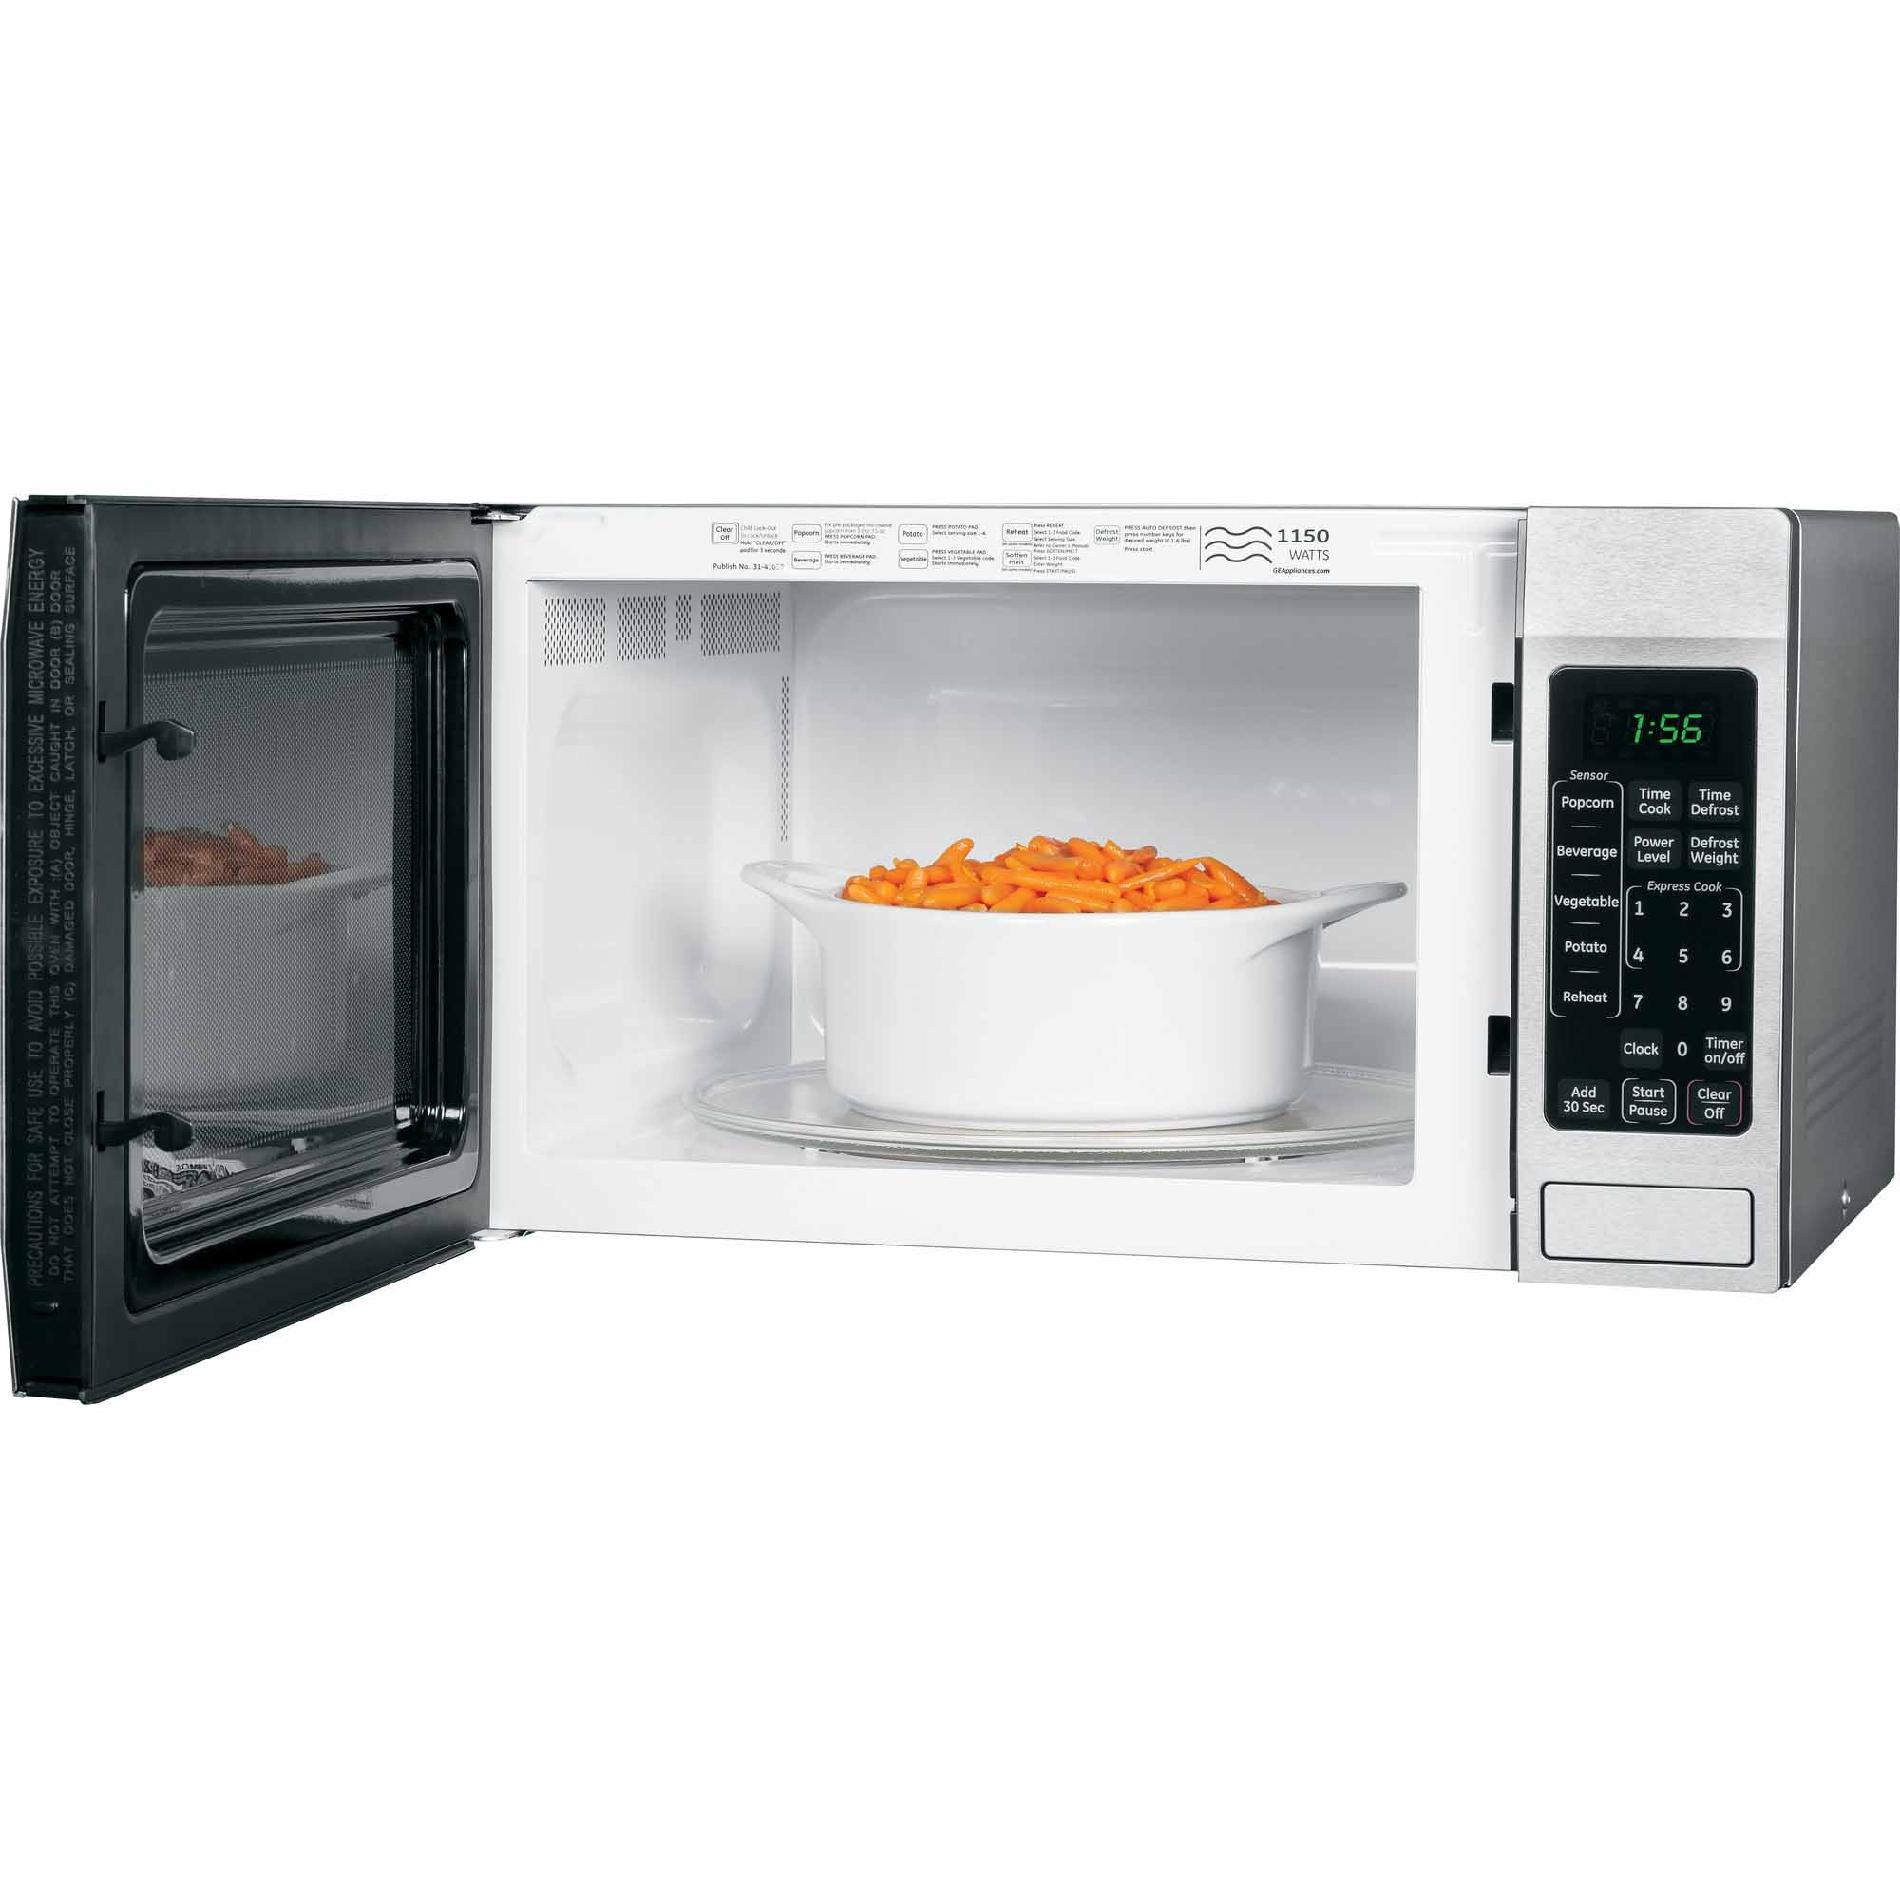 GE Appliances 1.6 cu. ft. Countertop Microwave Oven - Stainless Steel